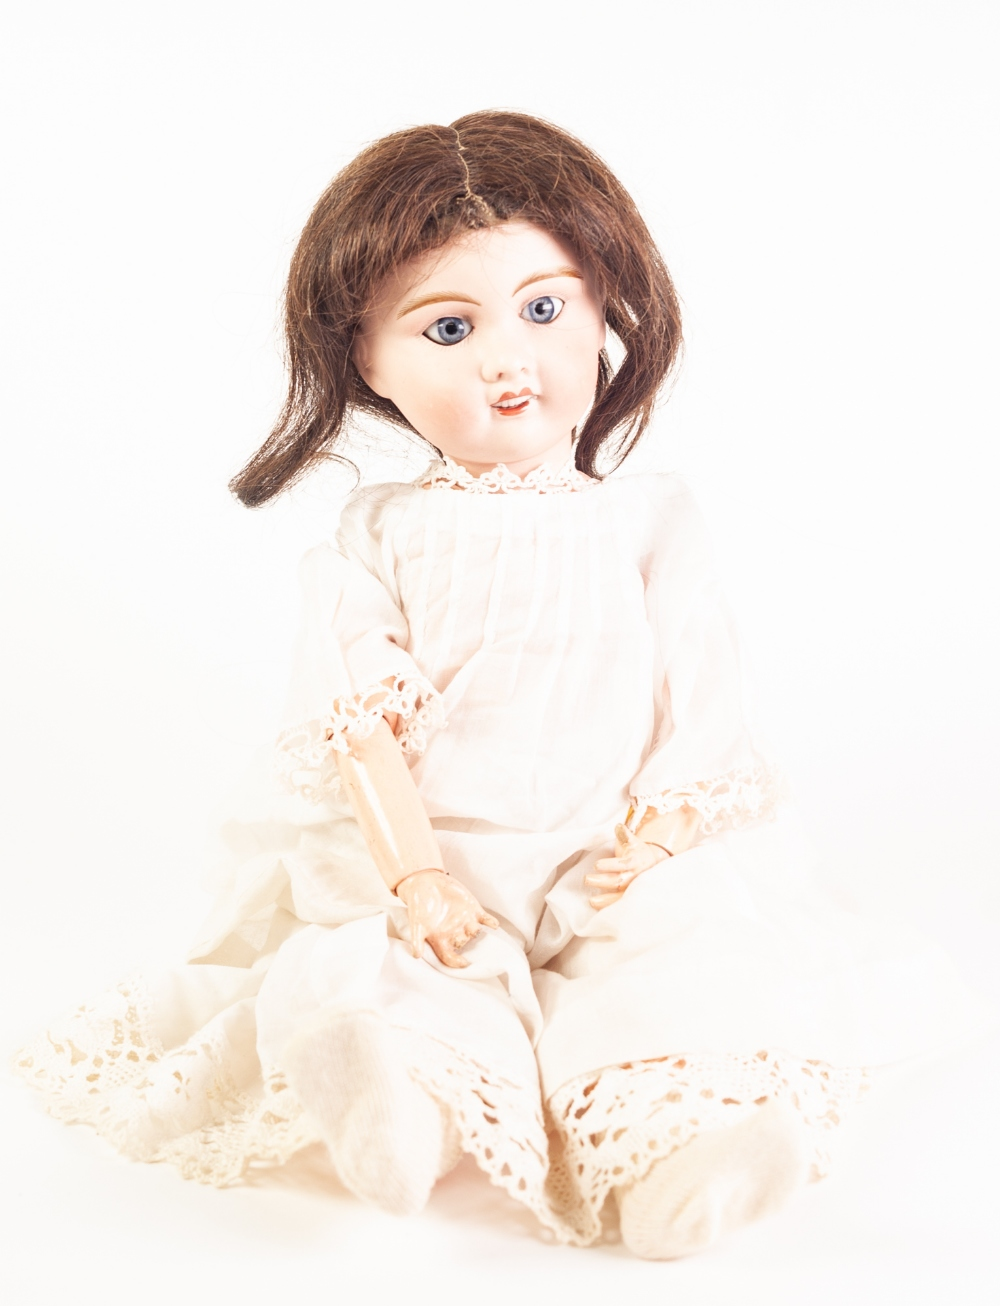 Lot 308 - FRENCH, PROBABLY SFBJ BISQUE HEADED 'PETITE' BABY DOLL with bisque head, fixed blue 'paperweight'